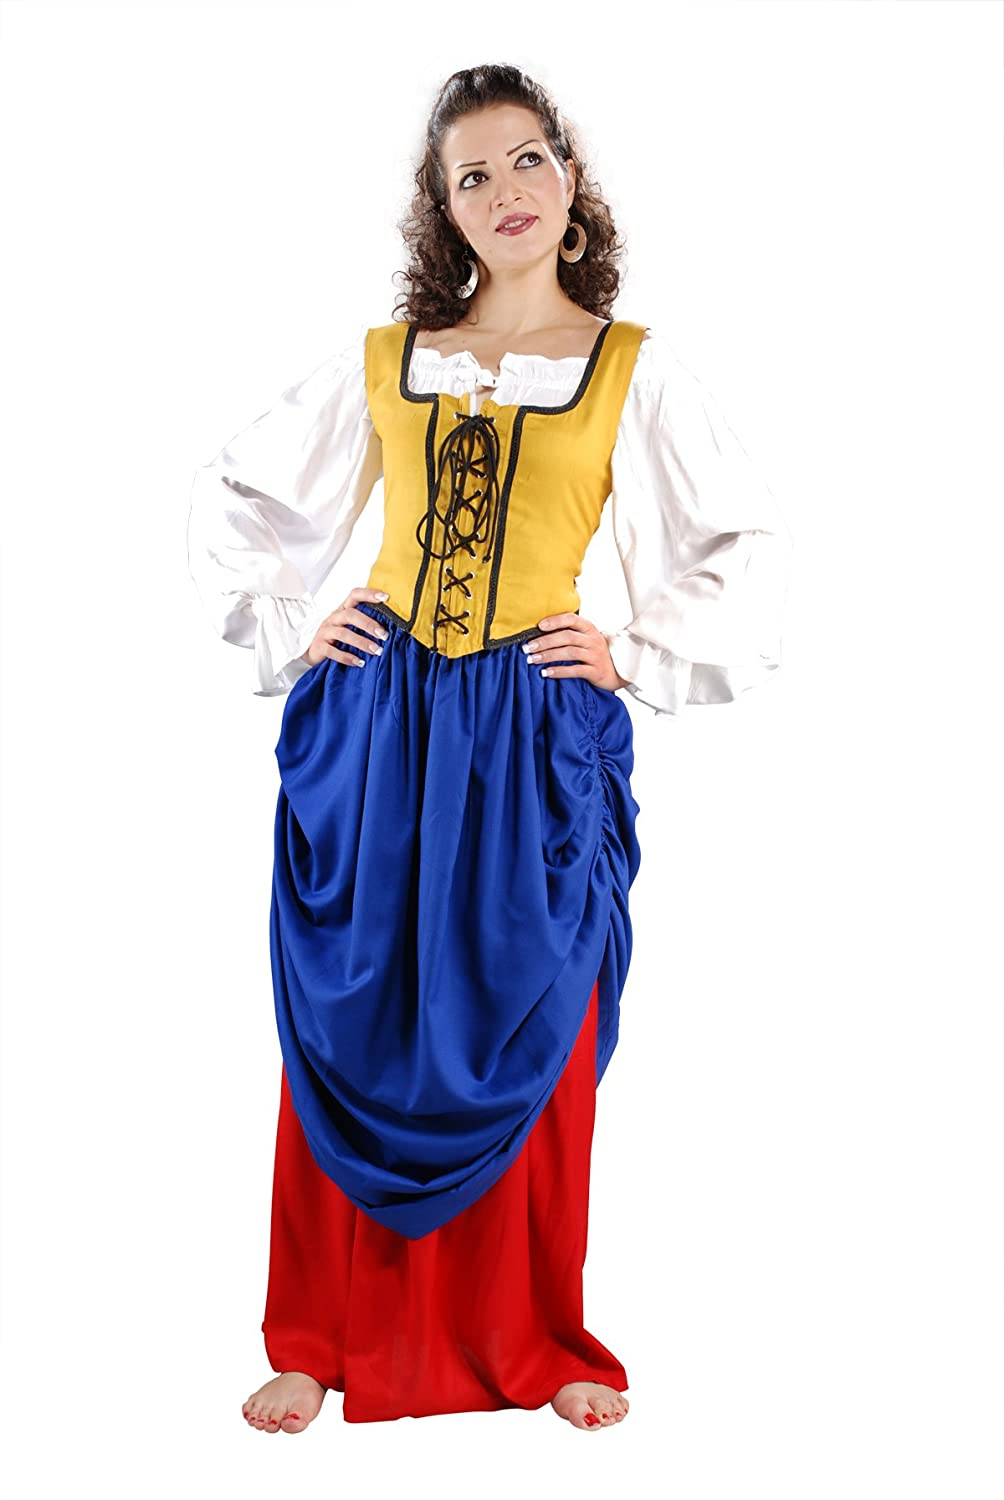 Women's Double-Layer Denim Blue and Red Medieval Renaissance Skirt by Armor Venue - DeluxeAdultCostumes.com